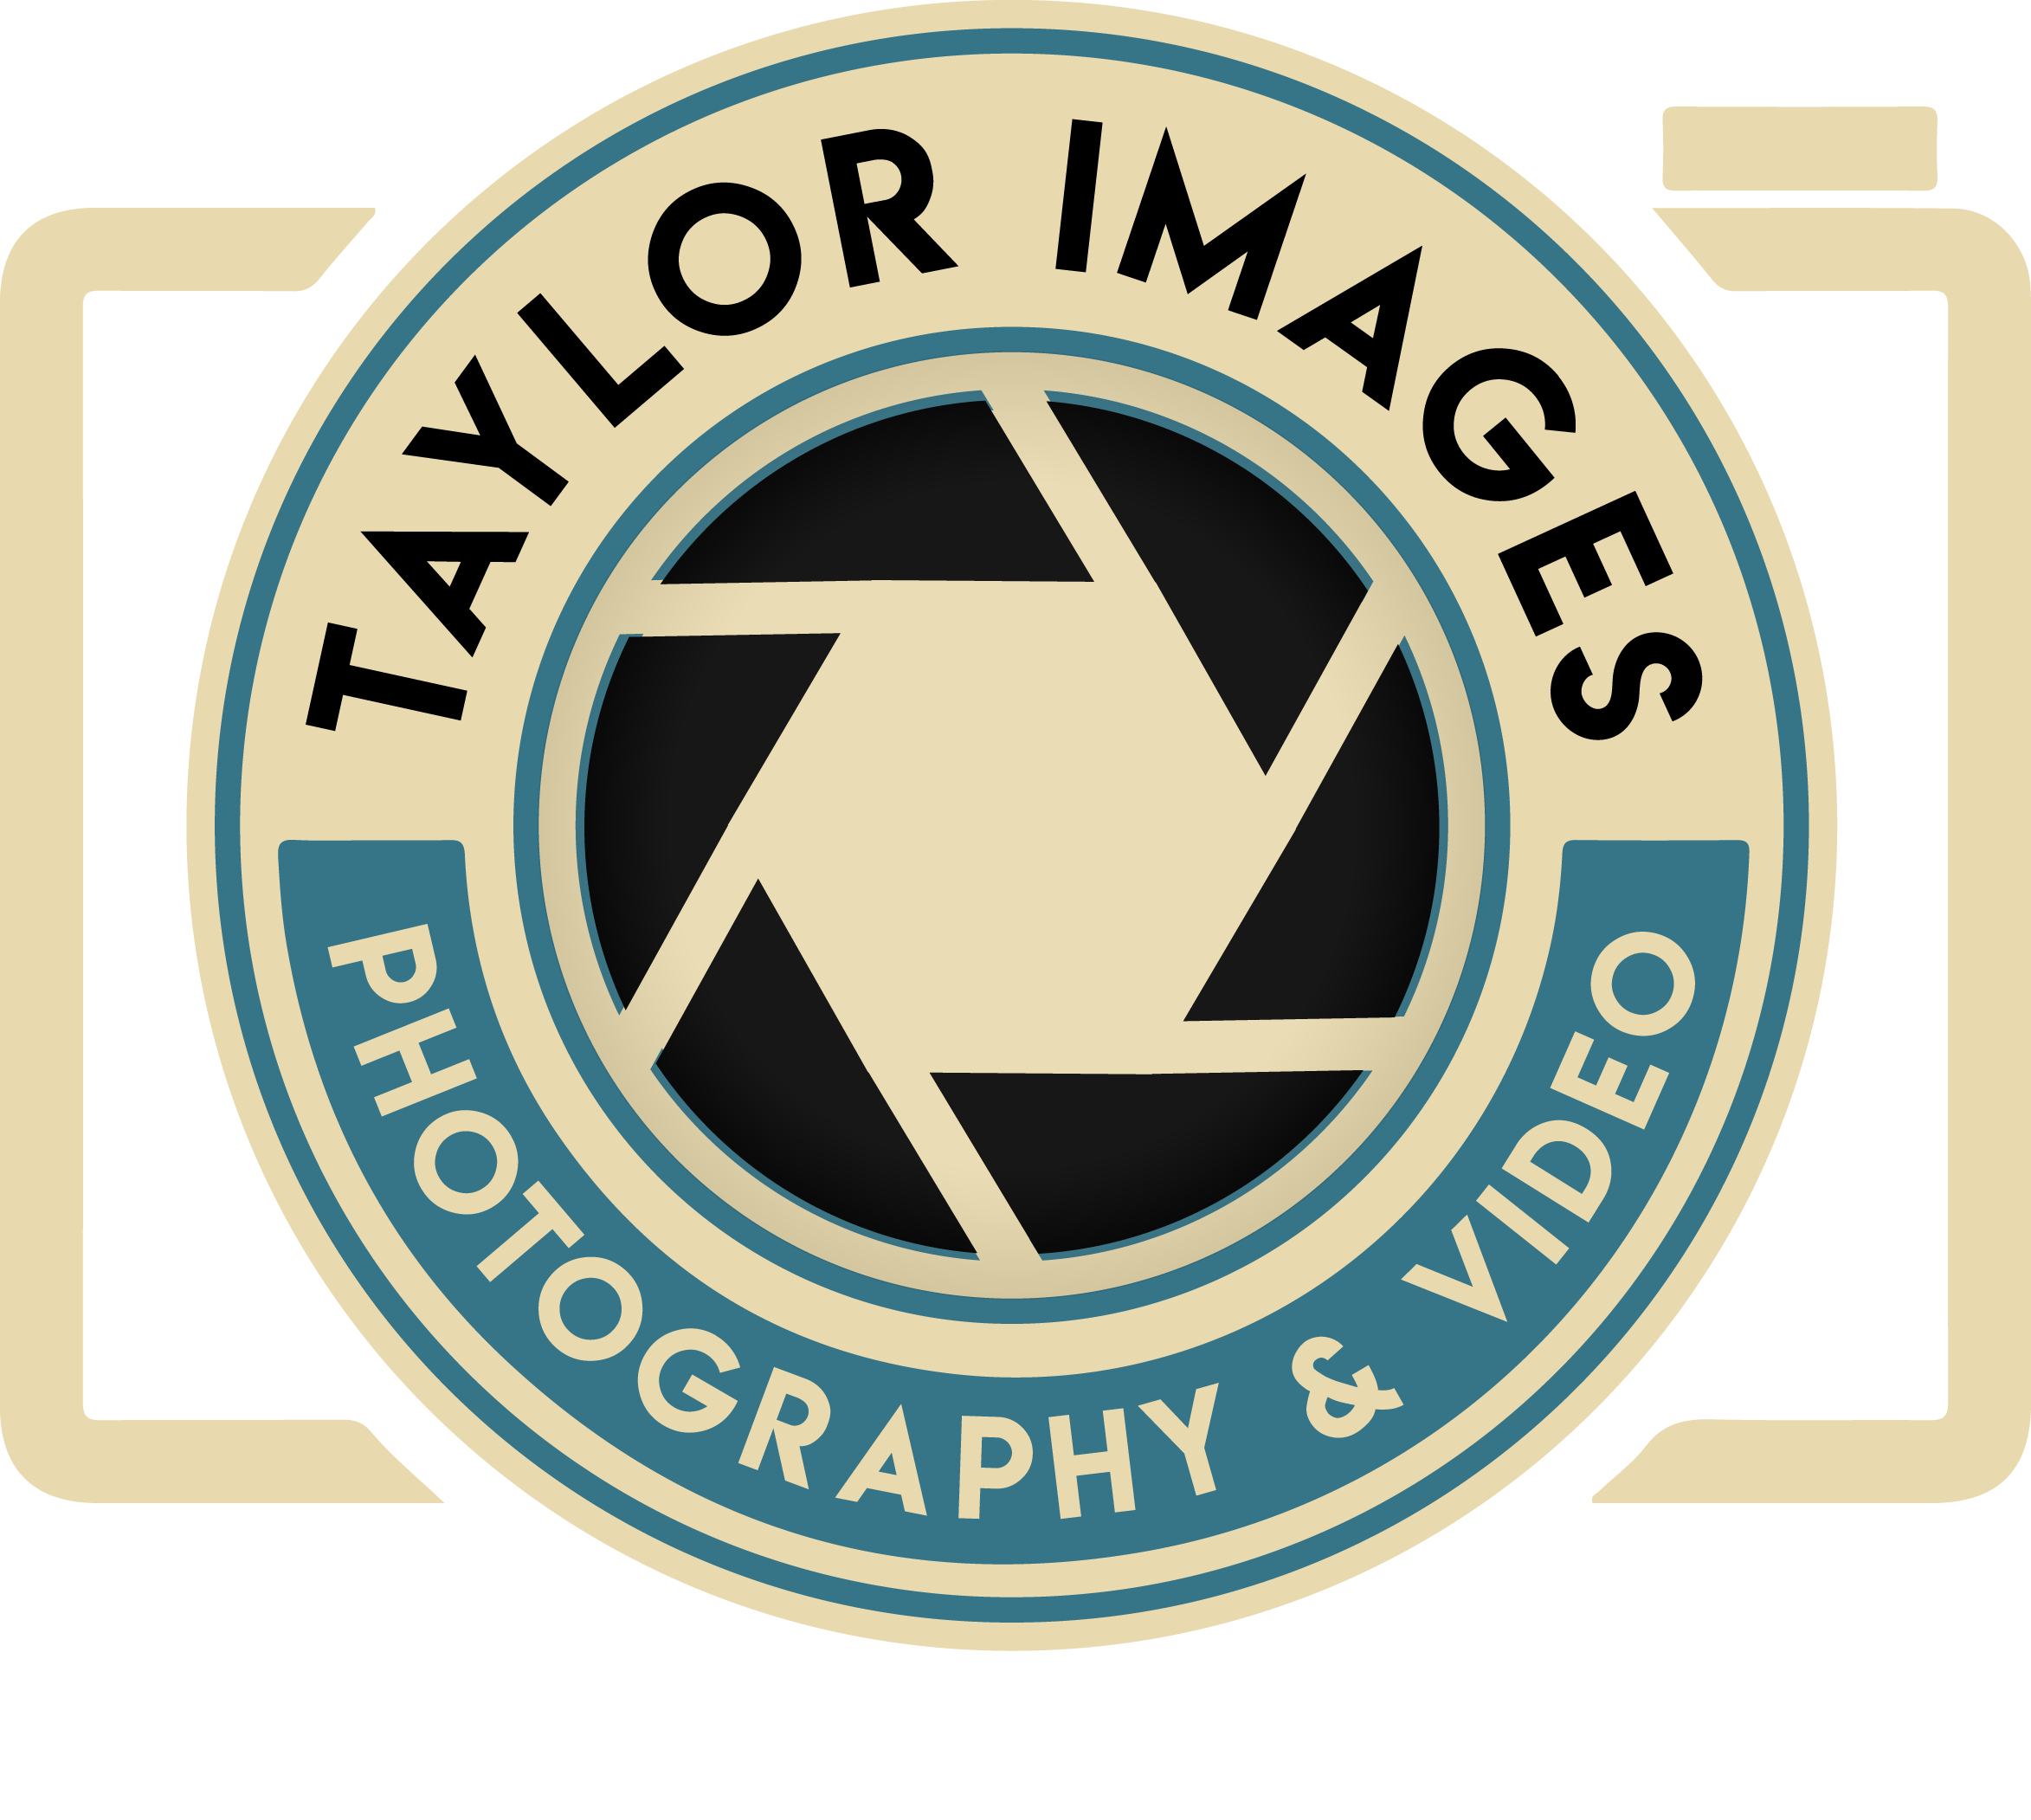 Taylor Images